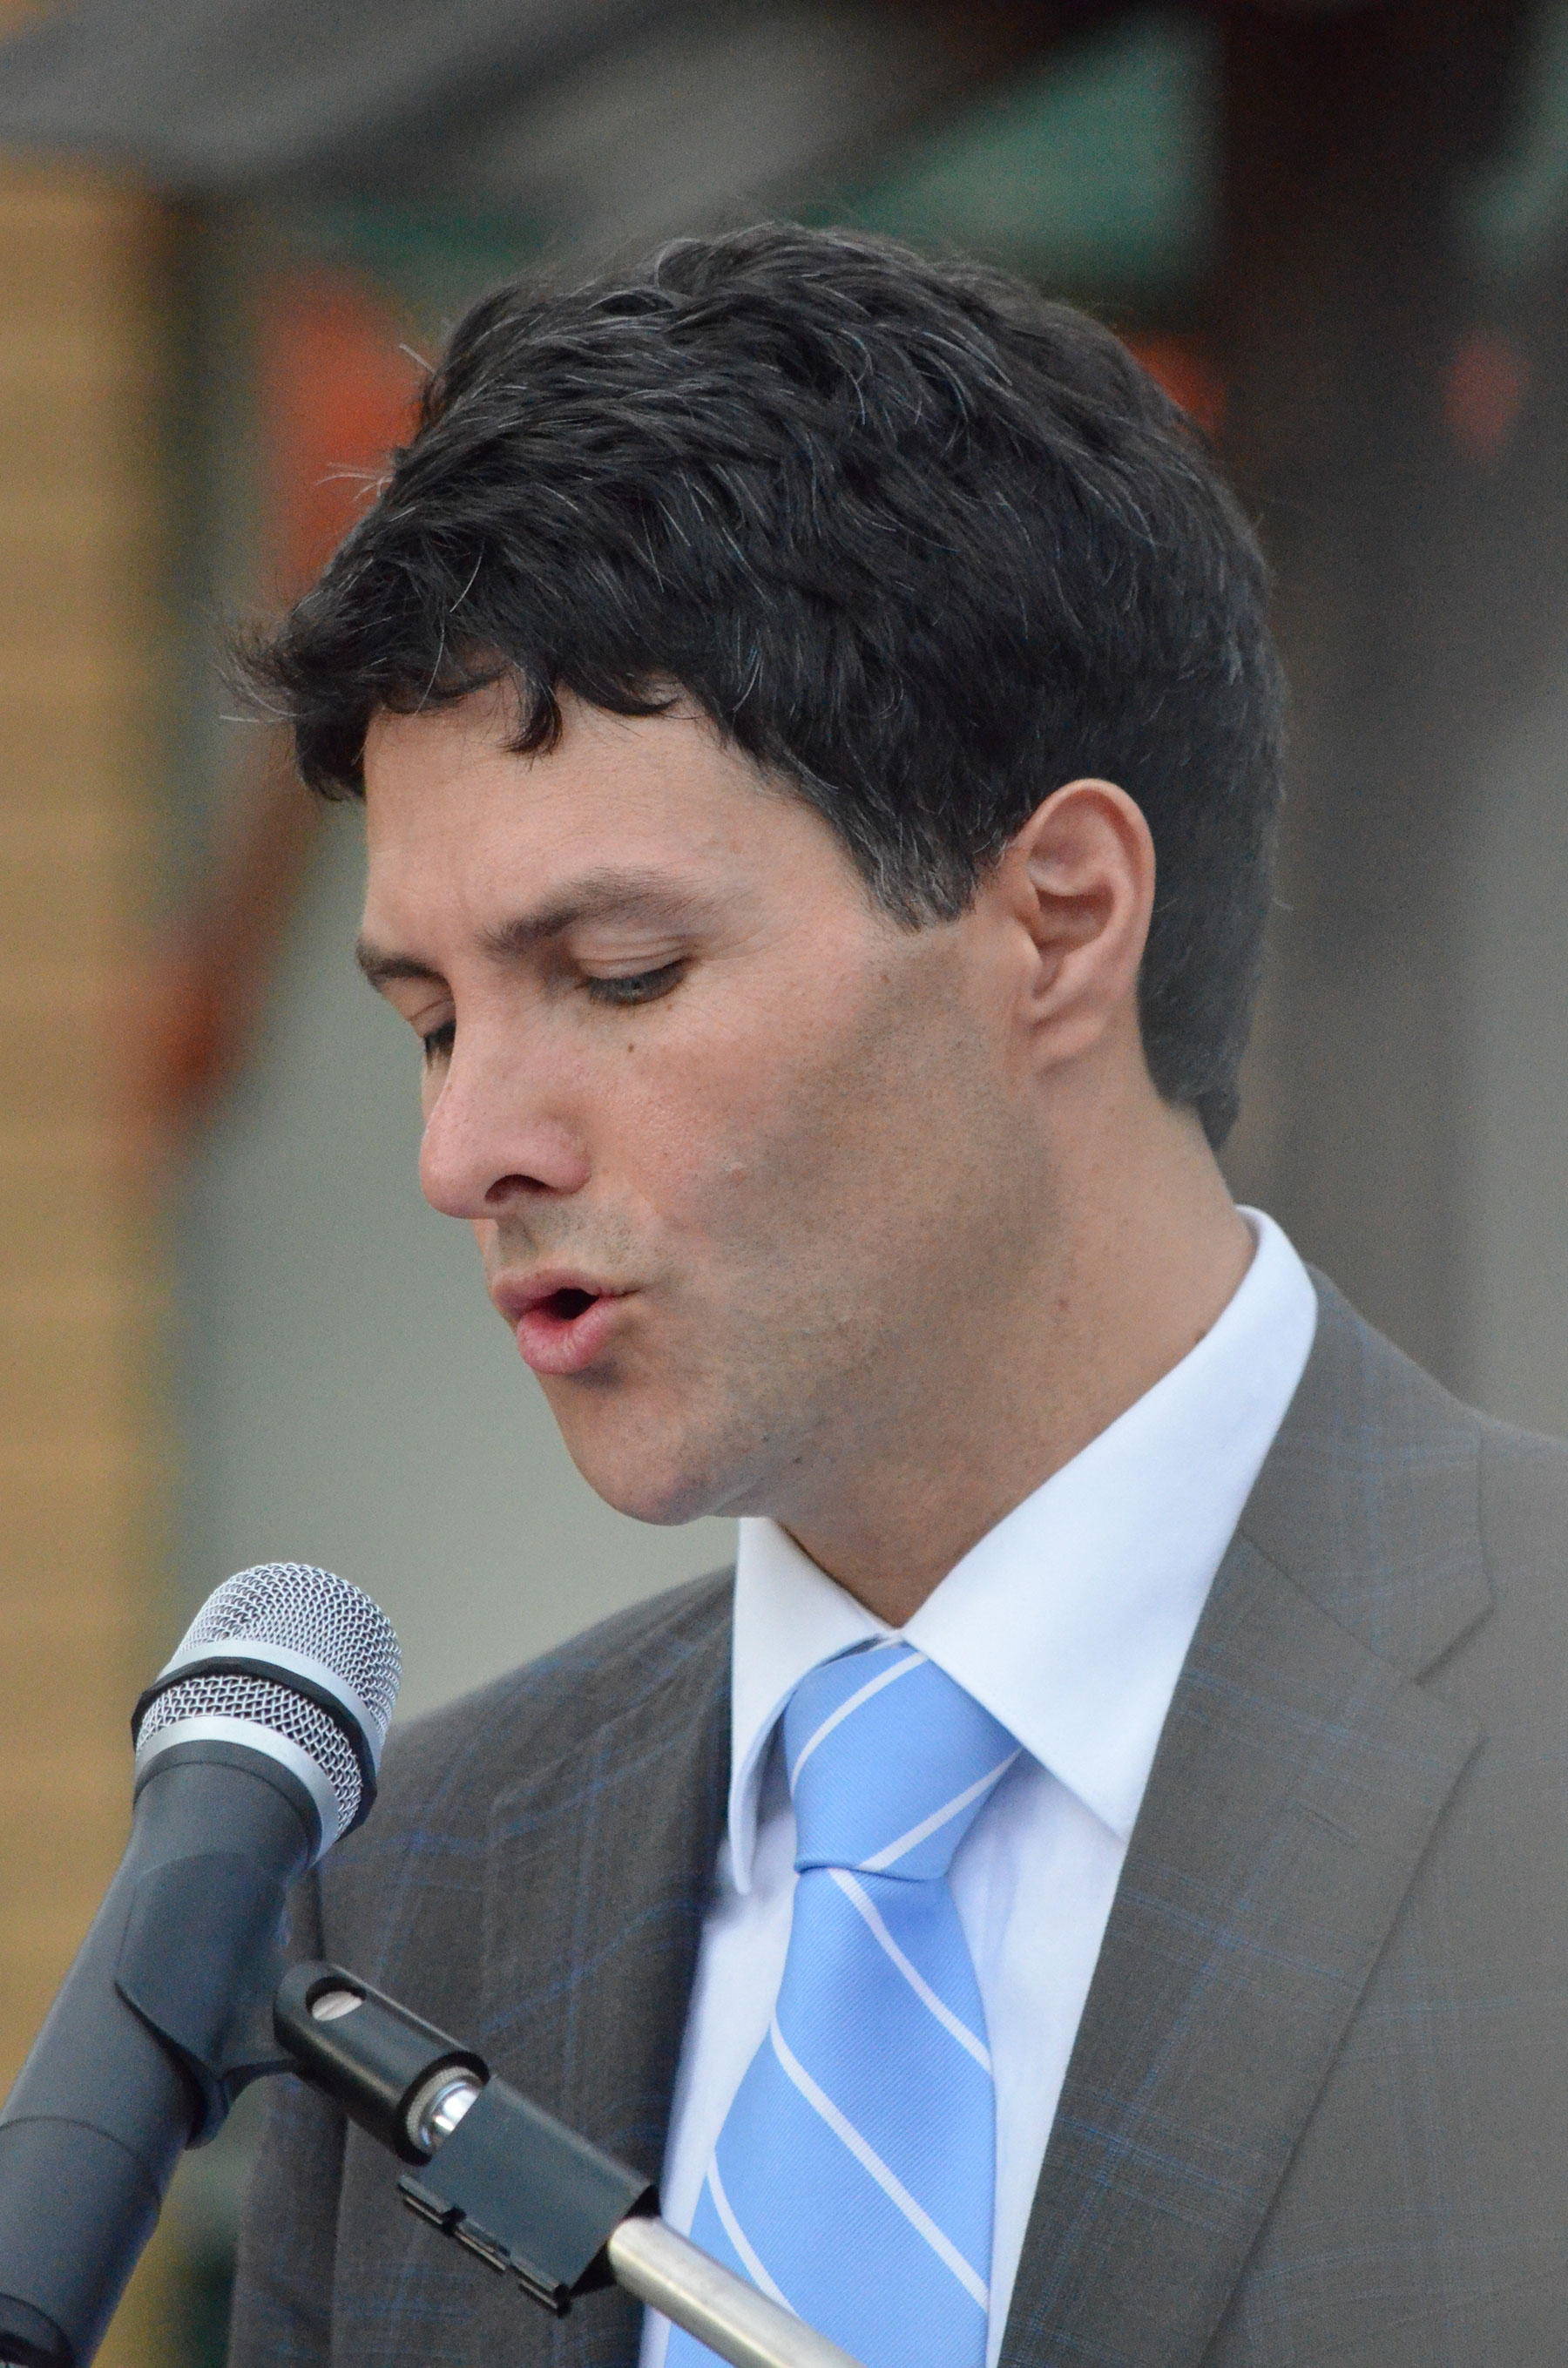 03 Victor Dominello MP Giving Address for 70th Commemoration at Lamia Barracks 16 Sept 2011